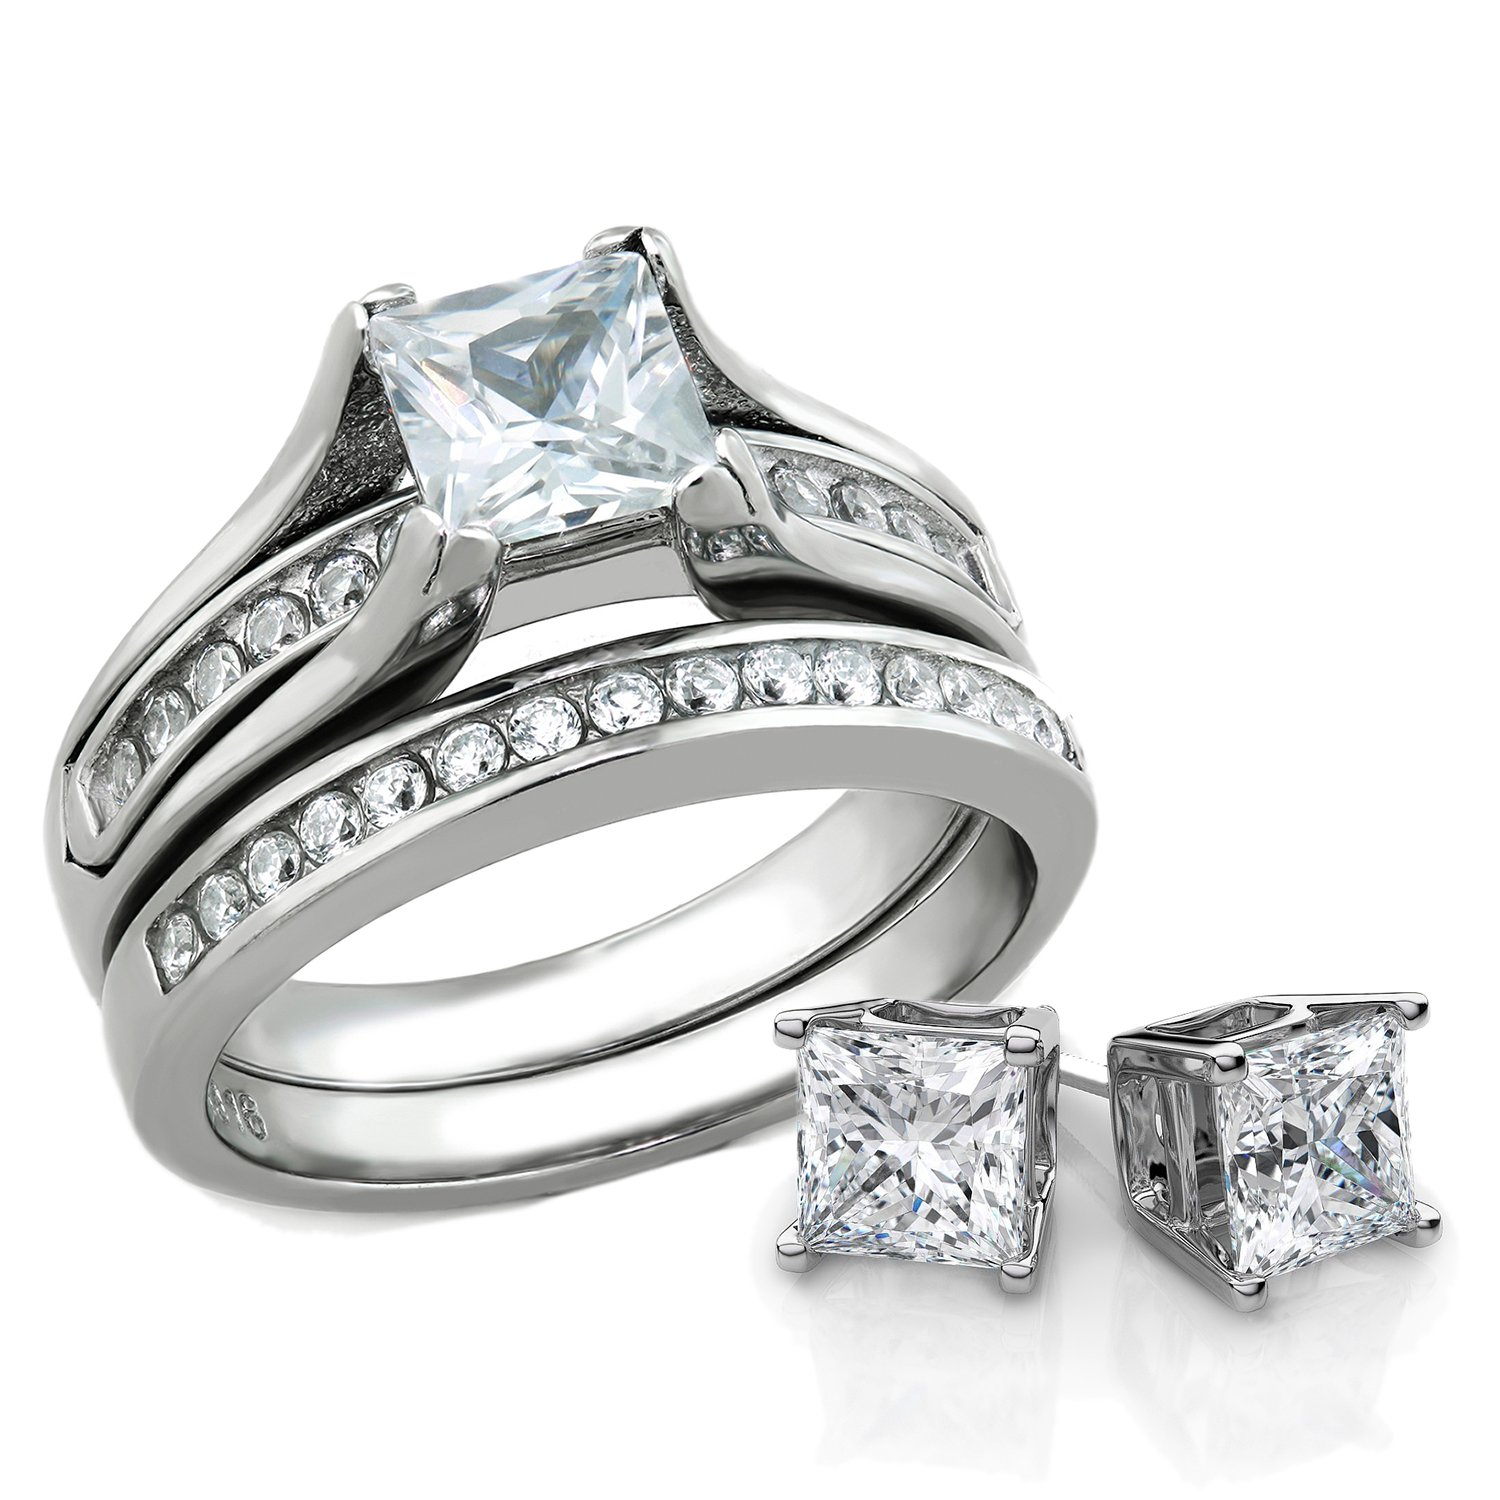 Bellux Style Women's 1 Carat Princess Cut Stainless Steel Wedding Rings Set & Matching Sterling Silver Stud Earrings (6)